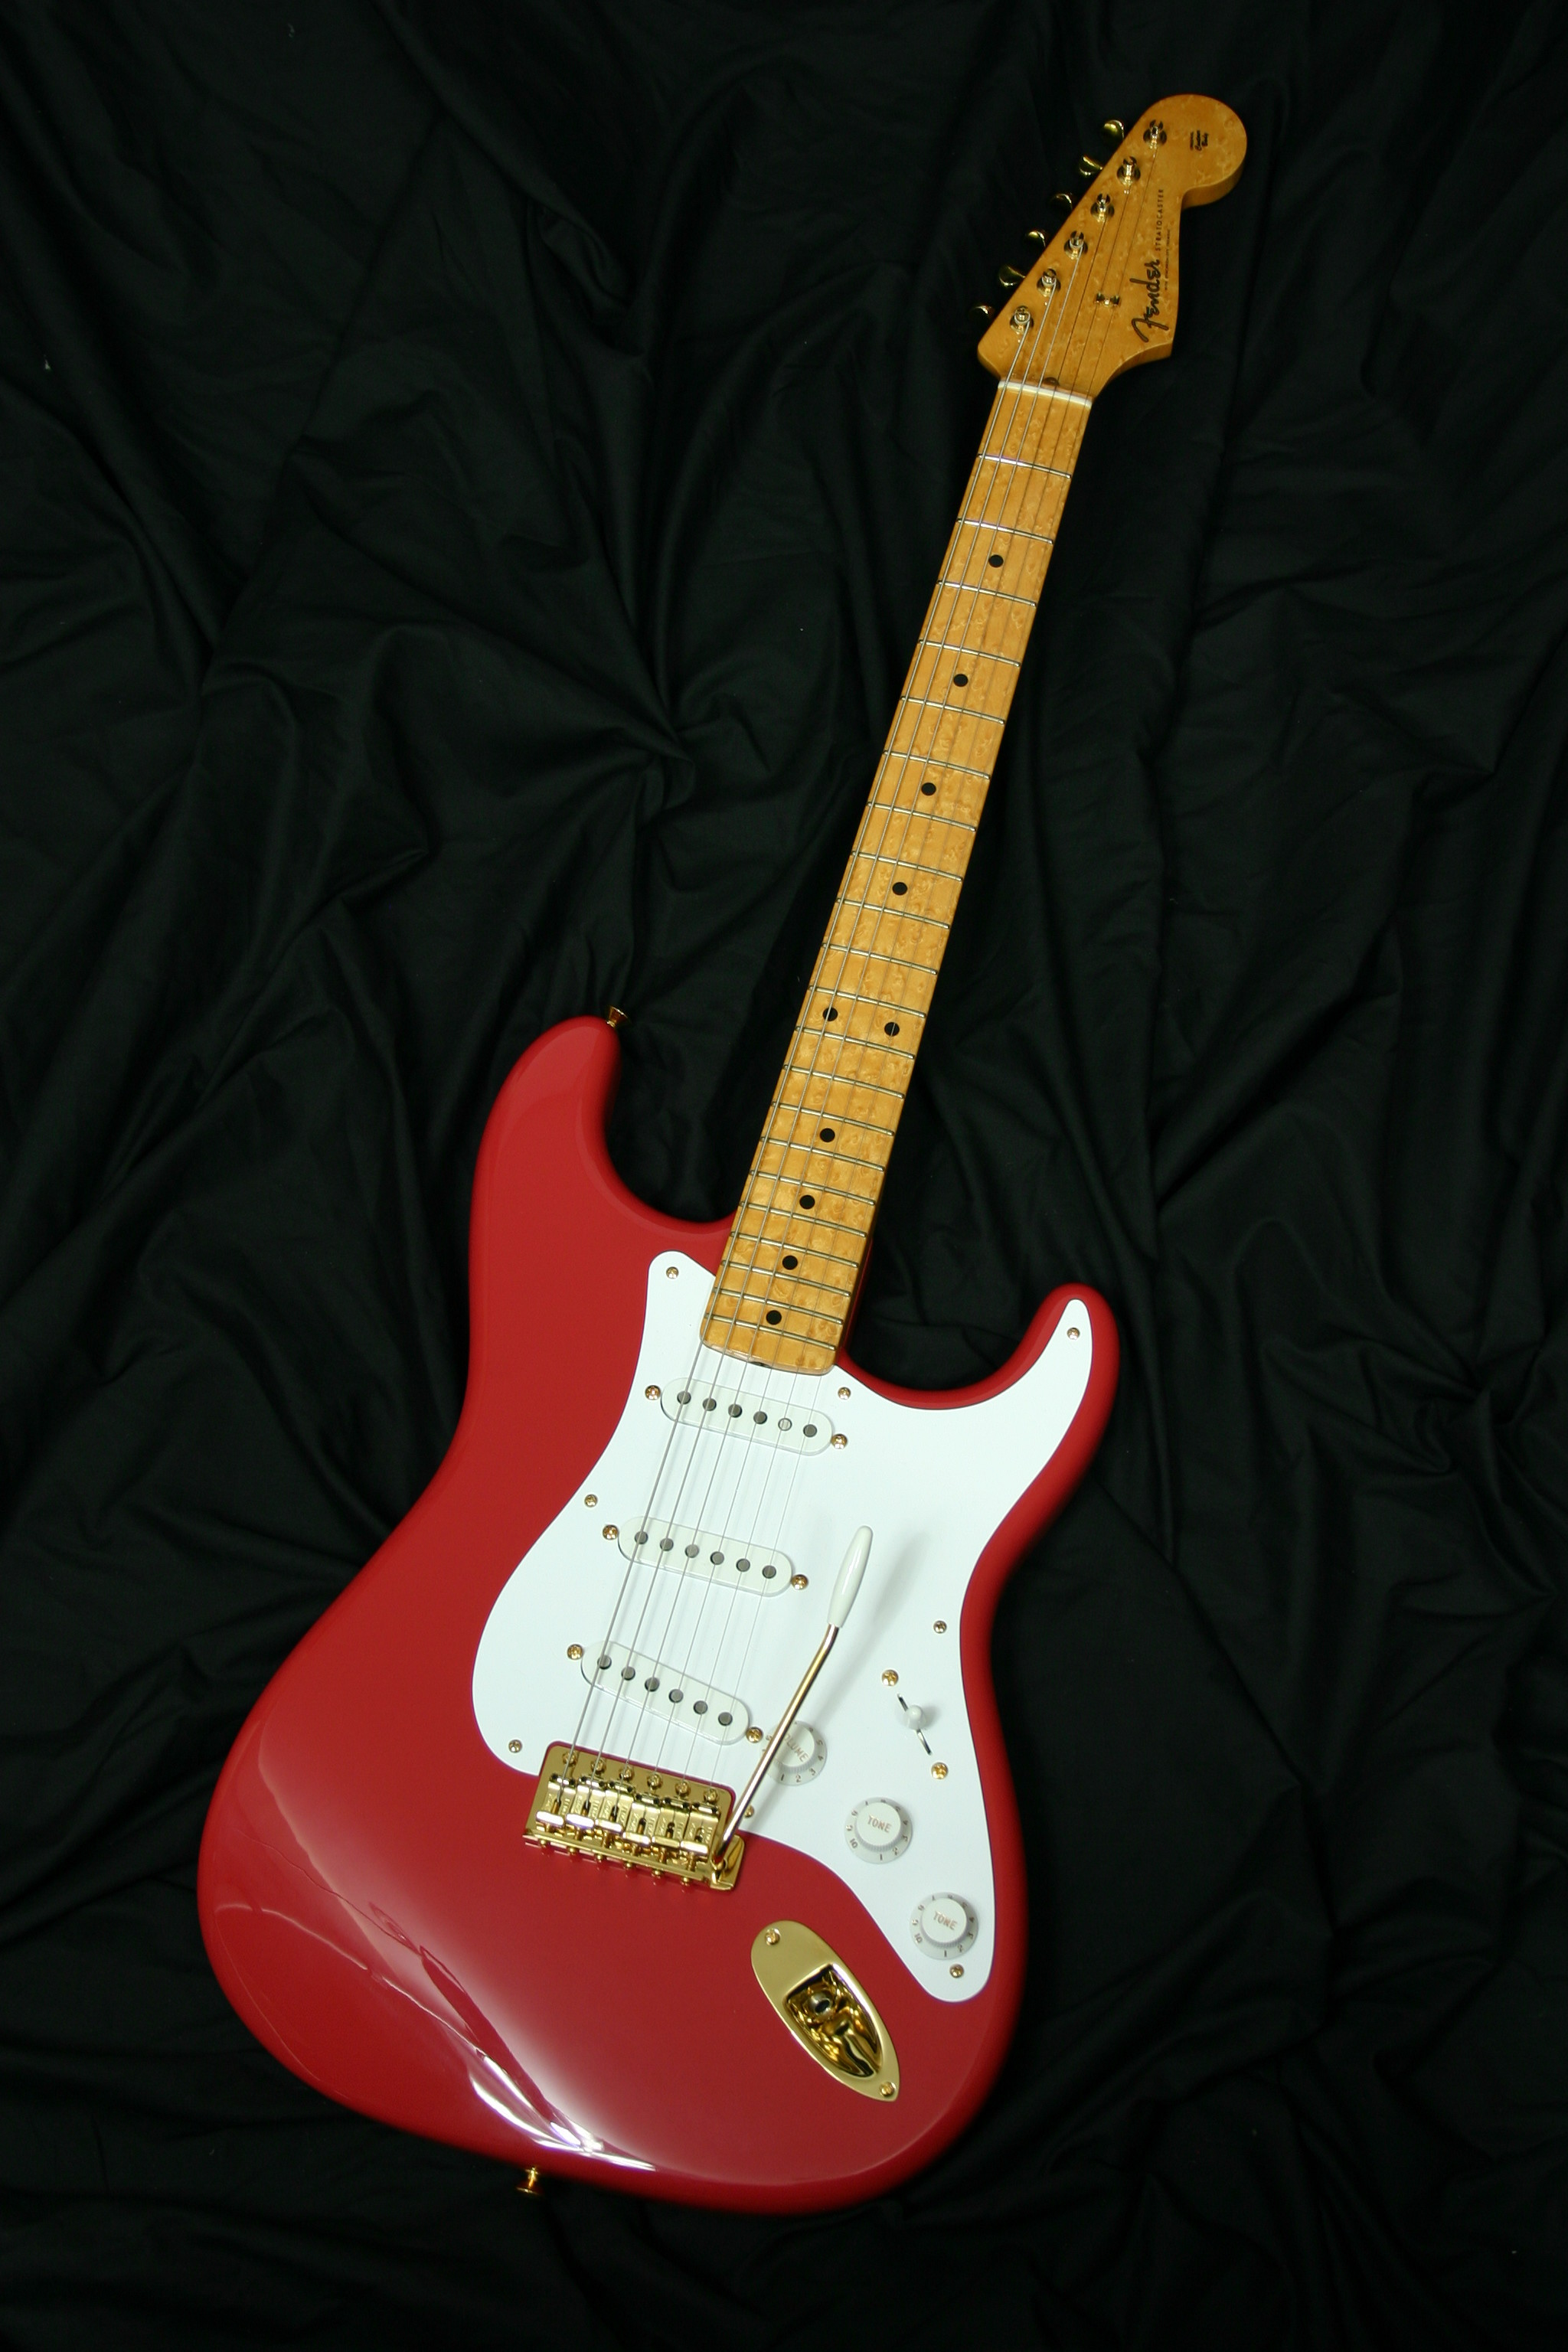 Fender Custom Shop Limited Edition CRS-59 Stratocaster in